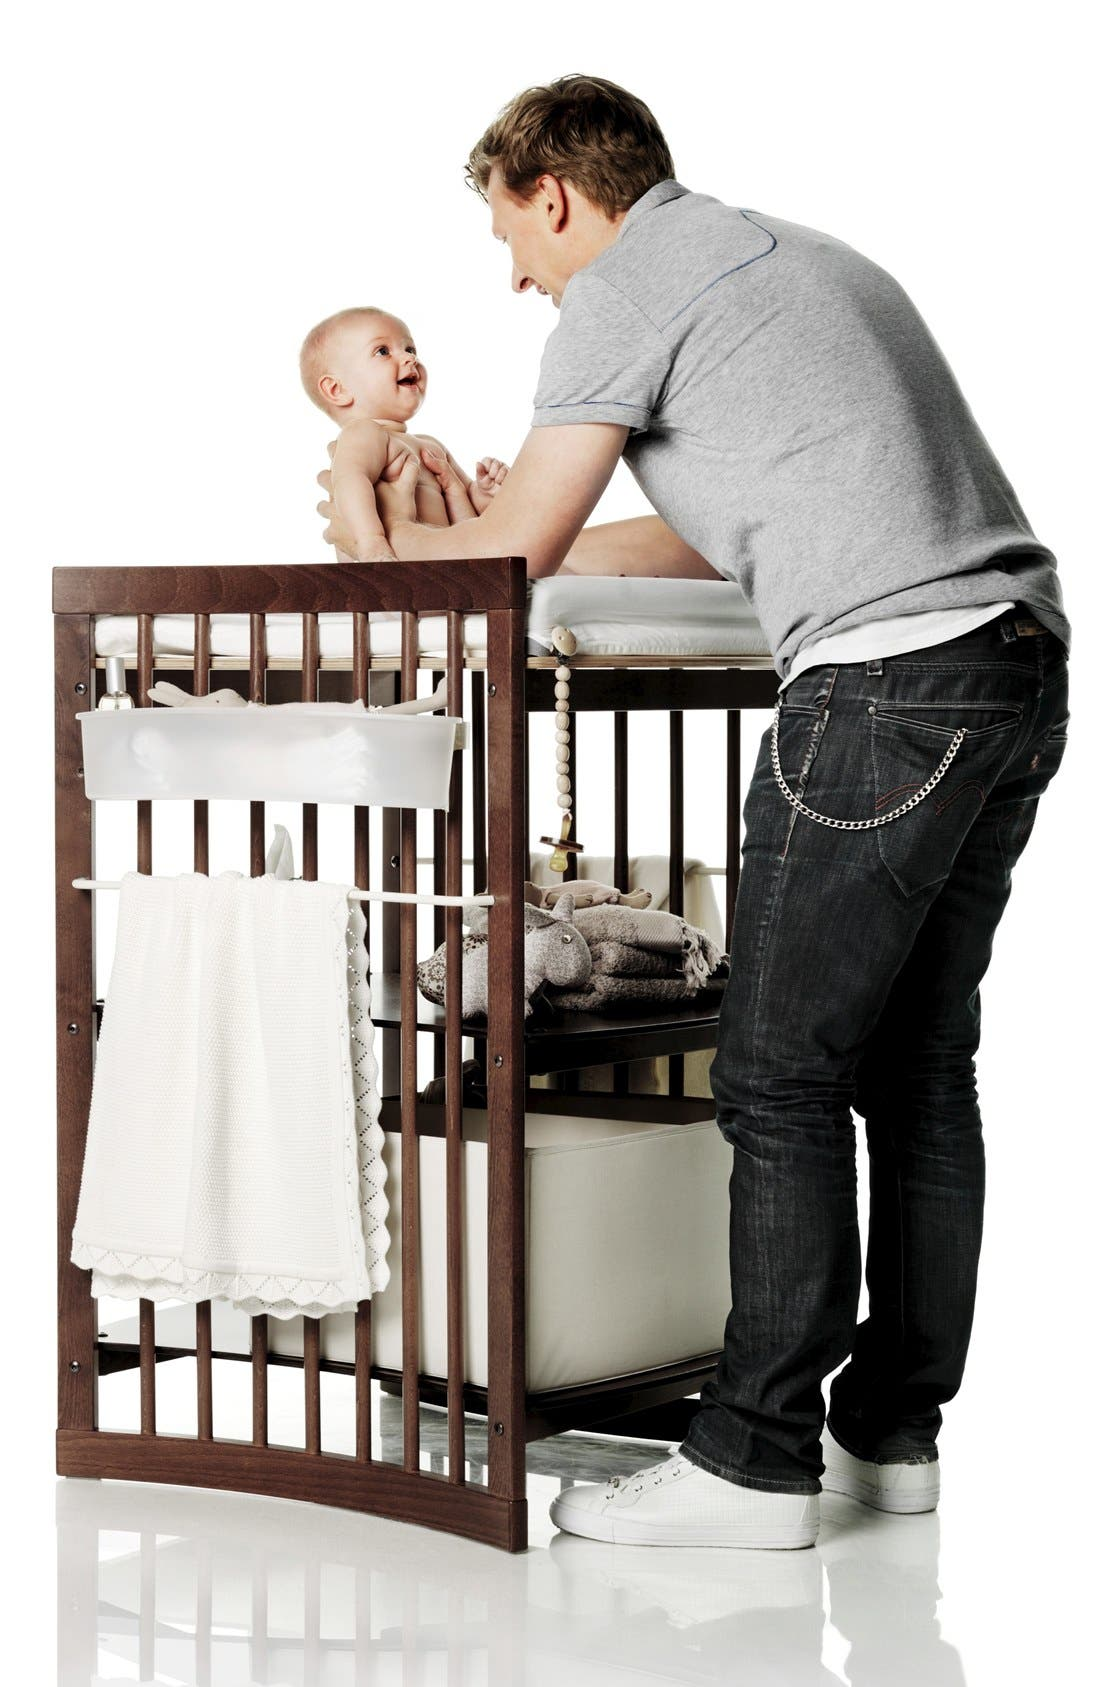 Stokke 'Care™' Changing Station